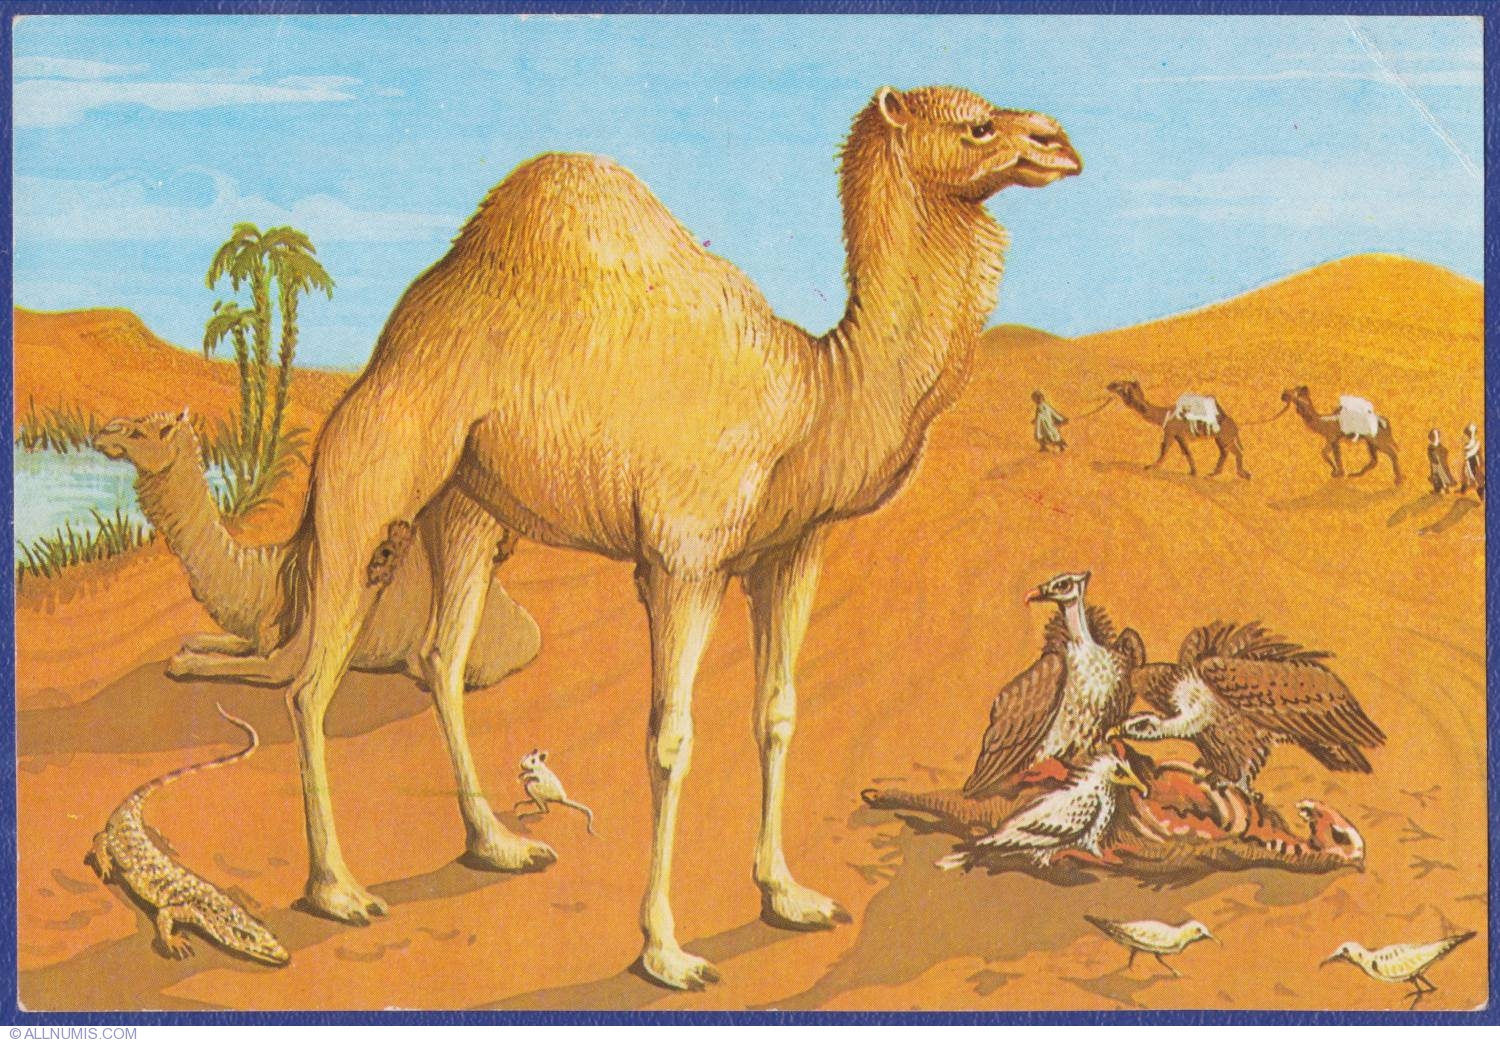 The Diorama - The life in Sahara desert - Natural History